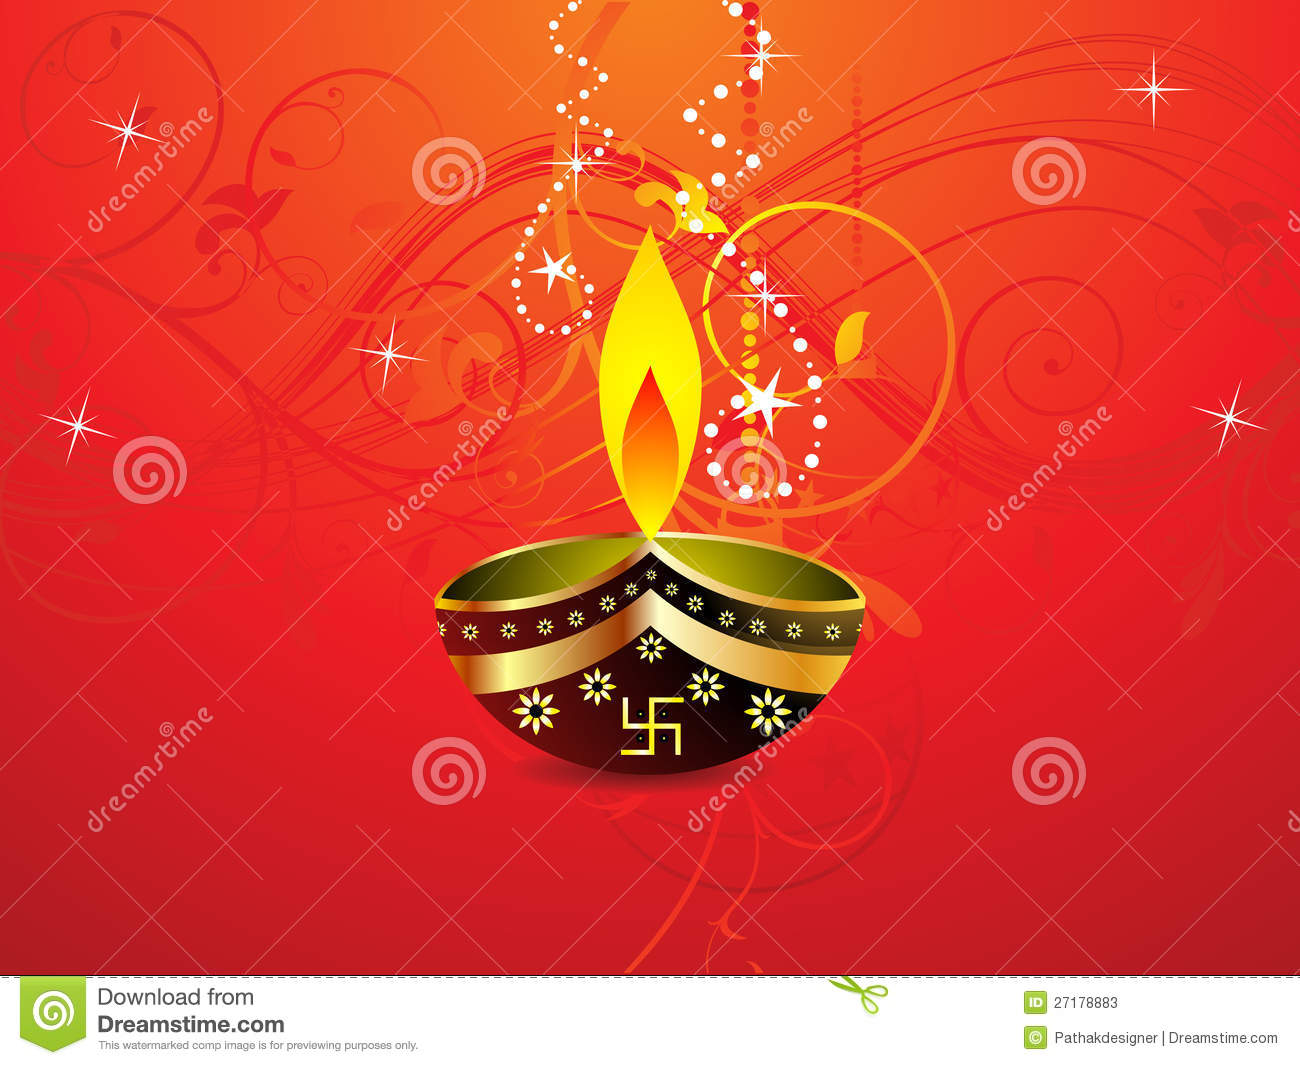 Abstract Diwali Background Template Stock Vector - Illustration of ...